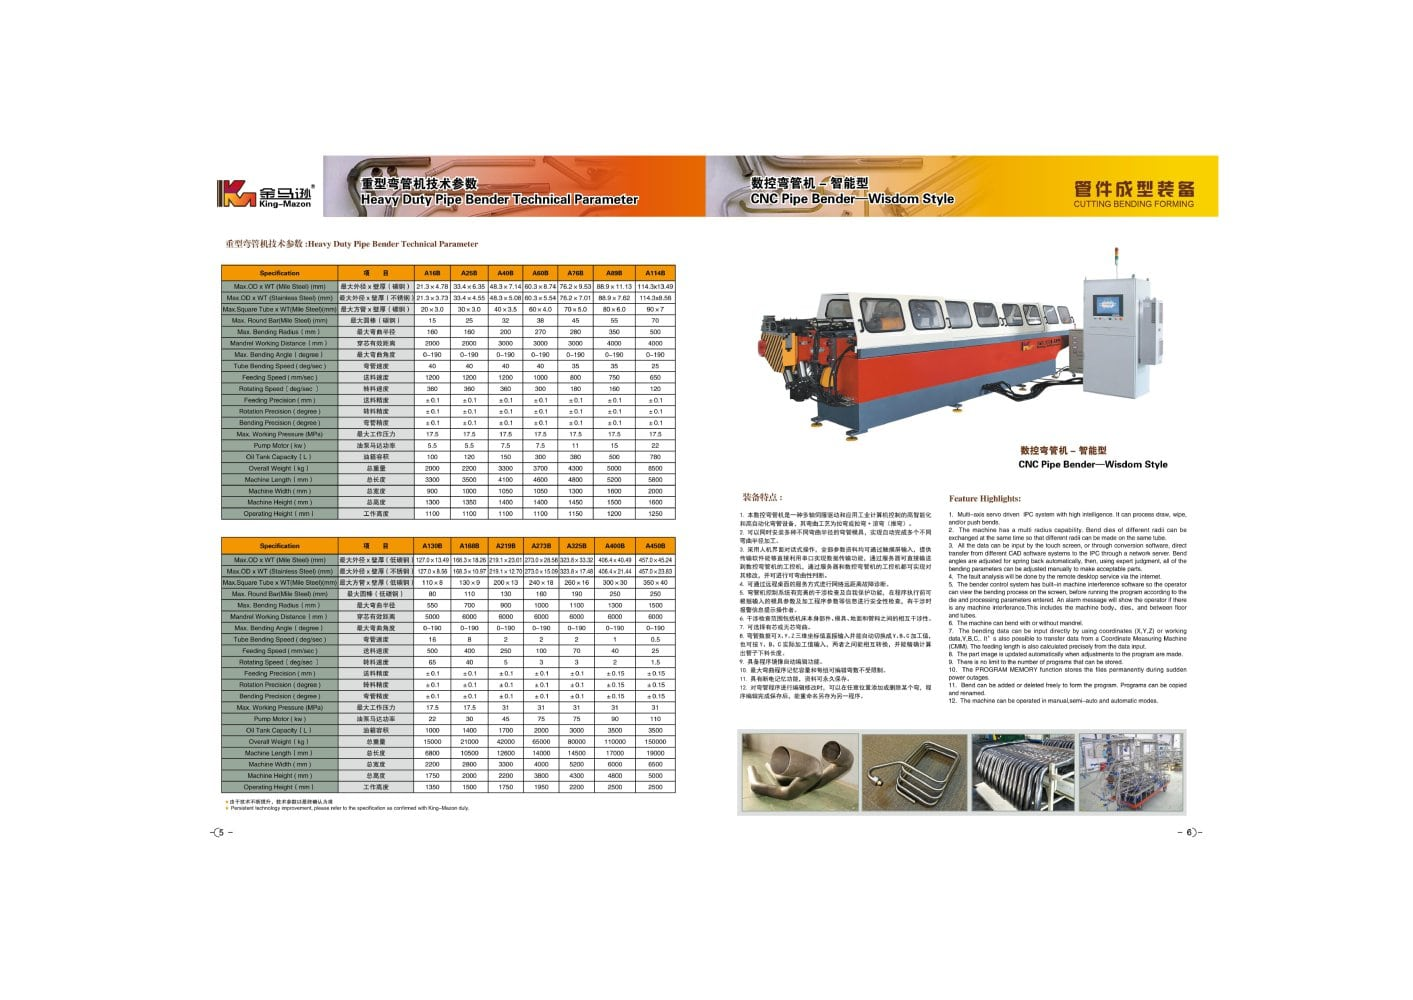 The parameter of heavy duty pipe bender - 1 / 1 Pages  sc 1 st  Catalogues Directindustry & The parameter of heavy duty pipe bender - King-Mazon - PDF Catalogue ...